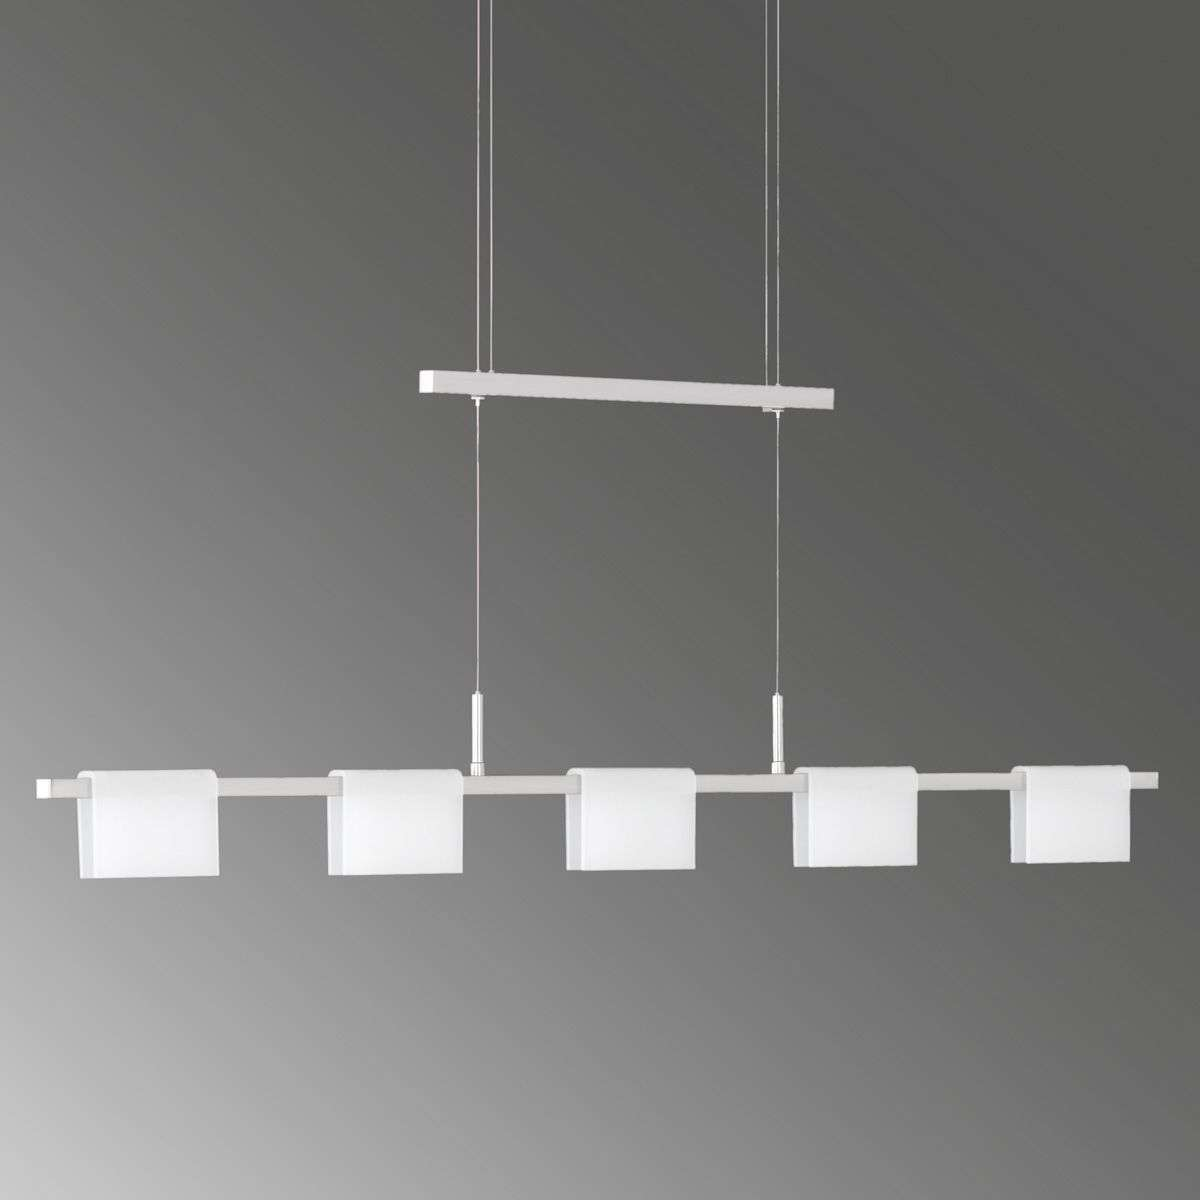 Dimbare LED-hanglamp Lienzo in hoogte verstelb.-4581052-31